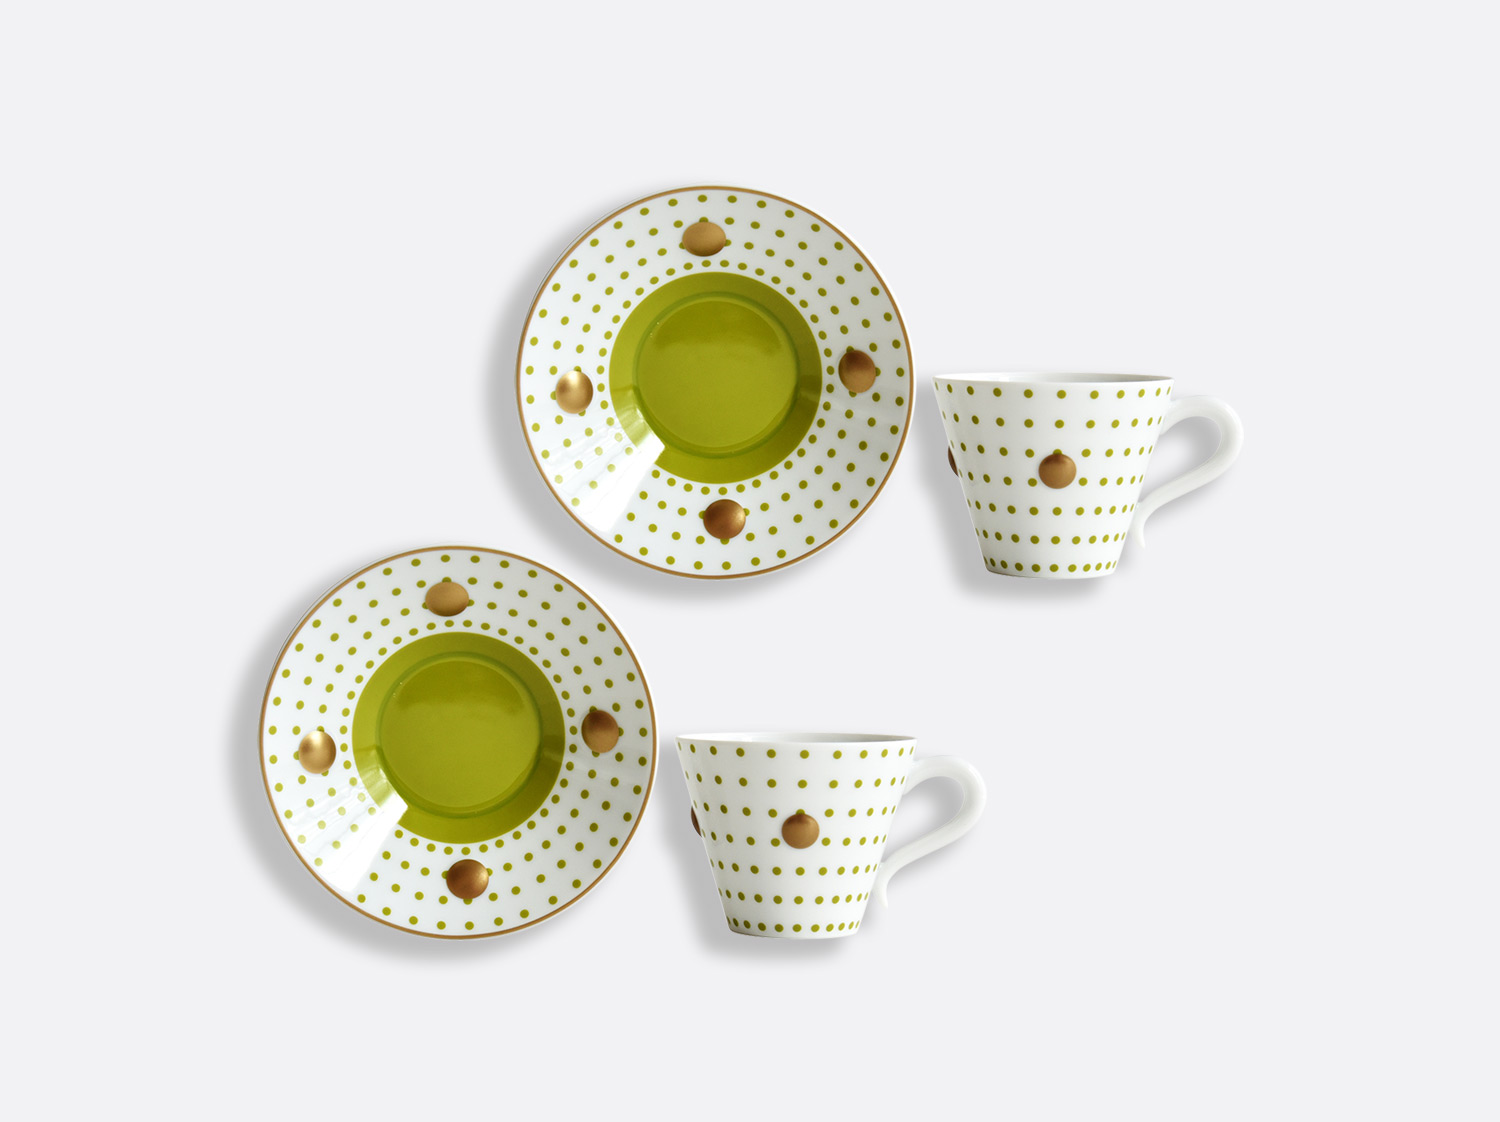 China Set of Absinthe green cups and saucers 13 cl - Set of 2 of the collection Knossos - Olivier Gagnère | Bernardaud